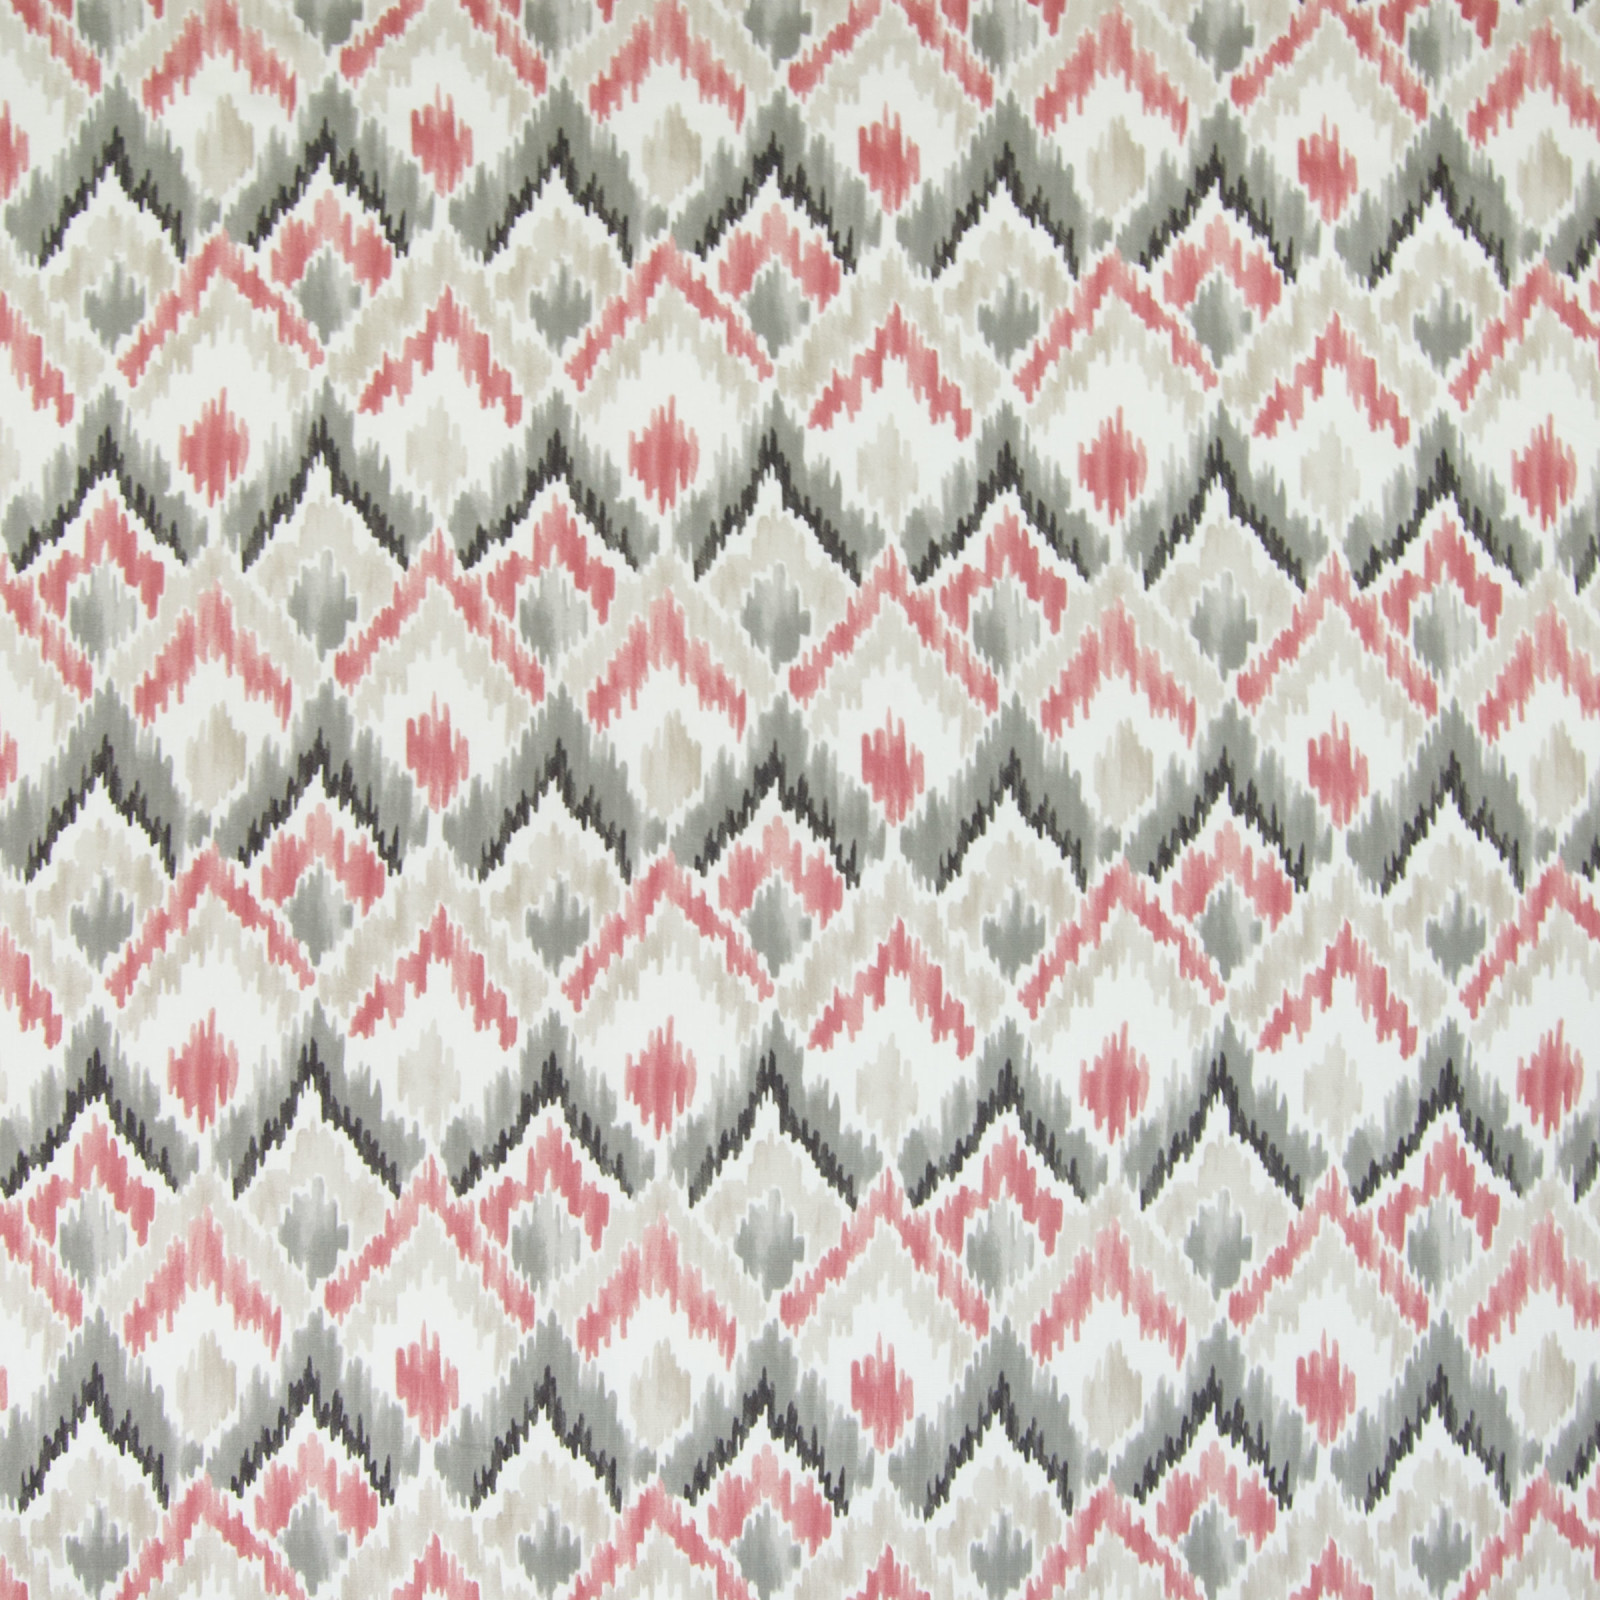 Wine Pink And Gray Ikat Prints Upholstery Fabric